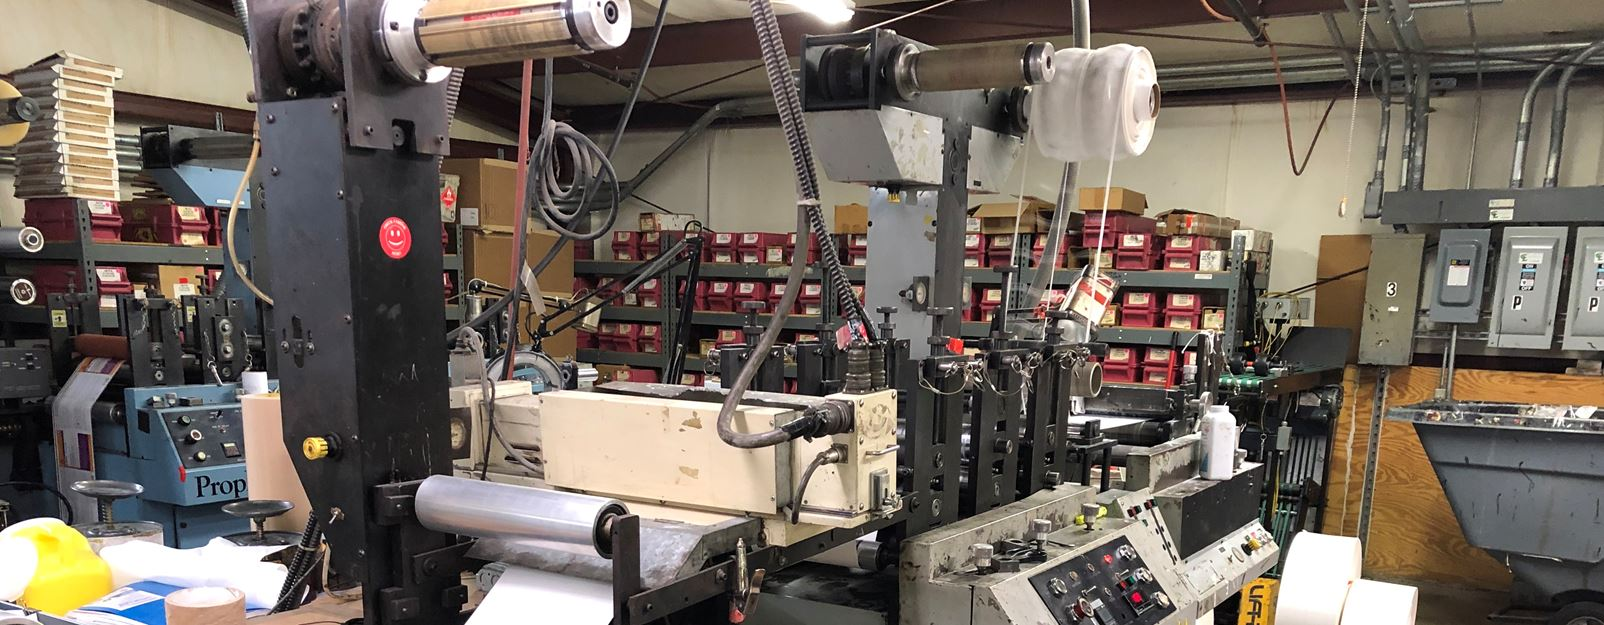 Propheteer - Used Flexo Printing Presses and Used Flexographic Equipment-1